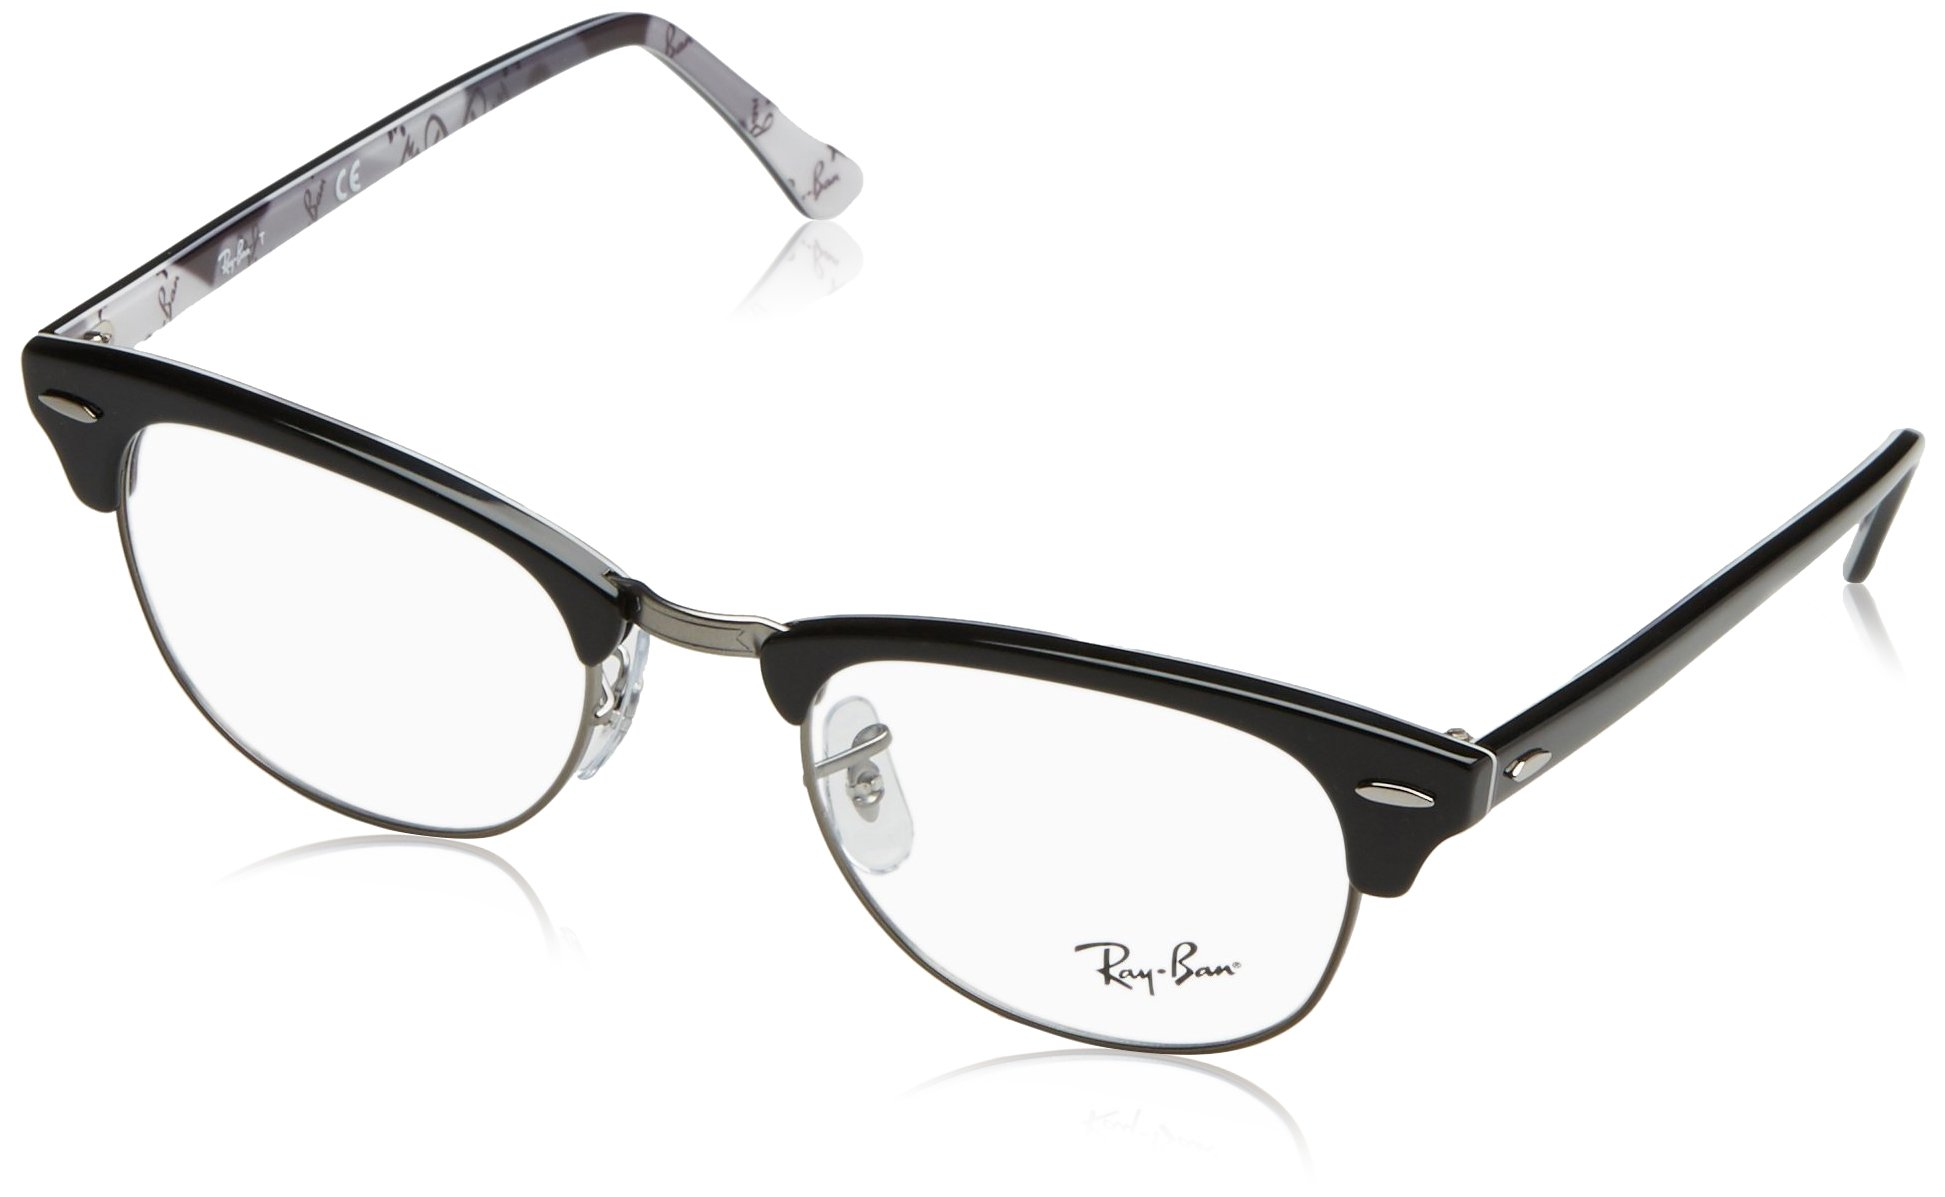 Ray-Ban RX5154 Clubmaster Eyeglasses Black on Texture Camuflage 51mm